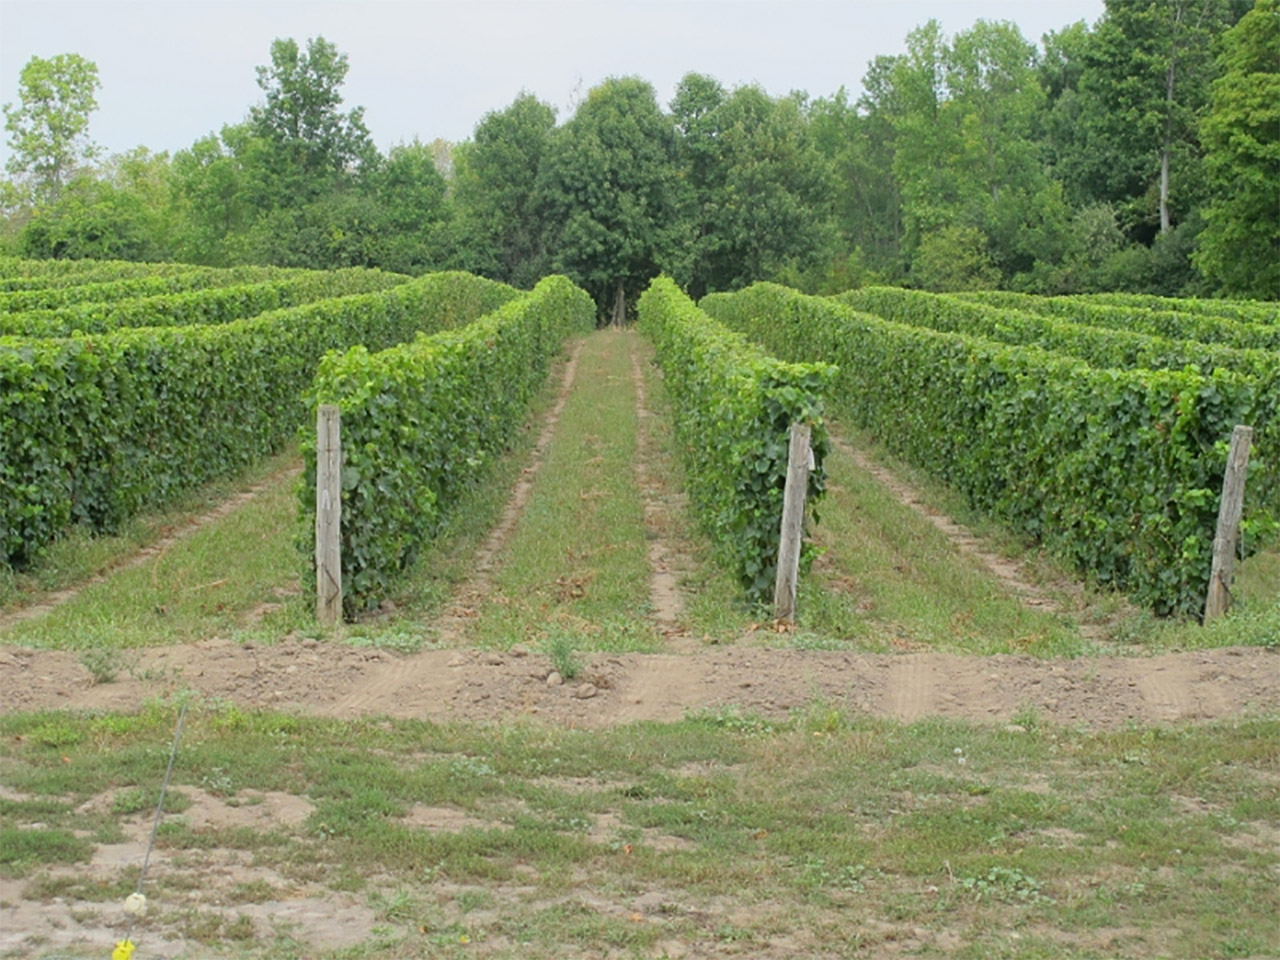 Chadsey's Cairns Winery in Prince Edward County, Ontario